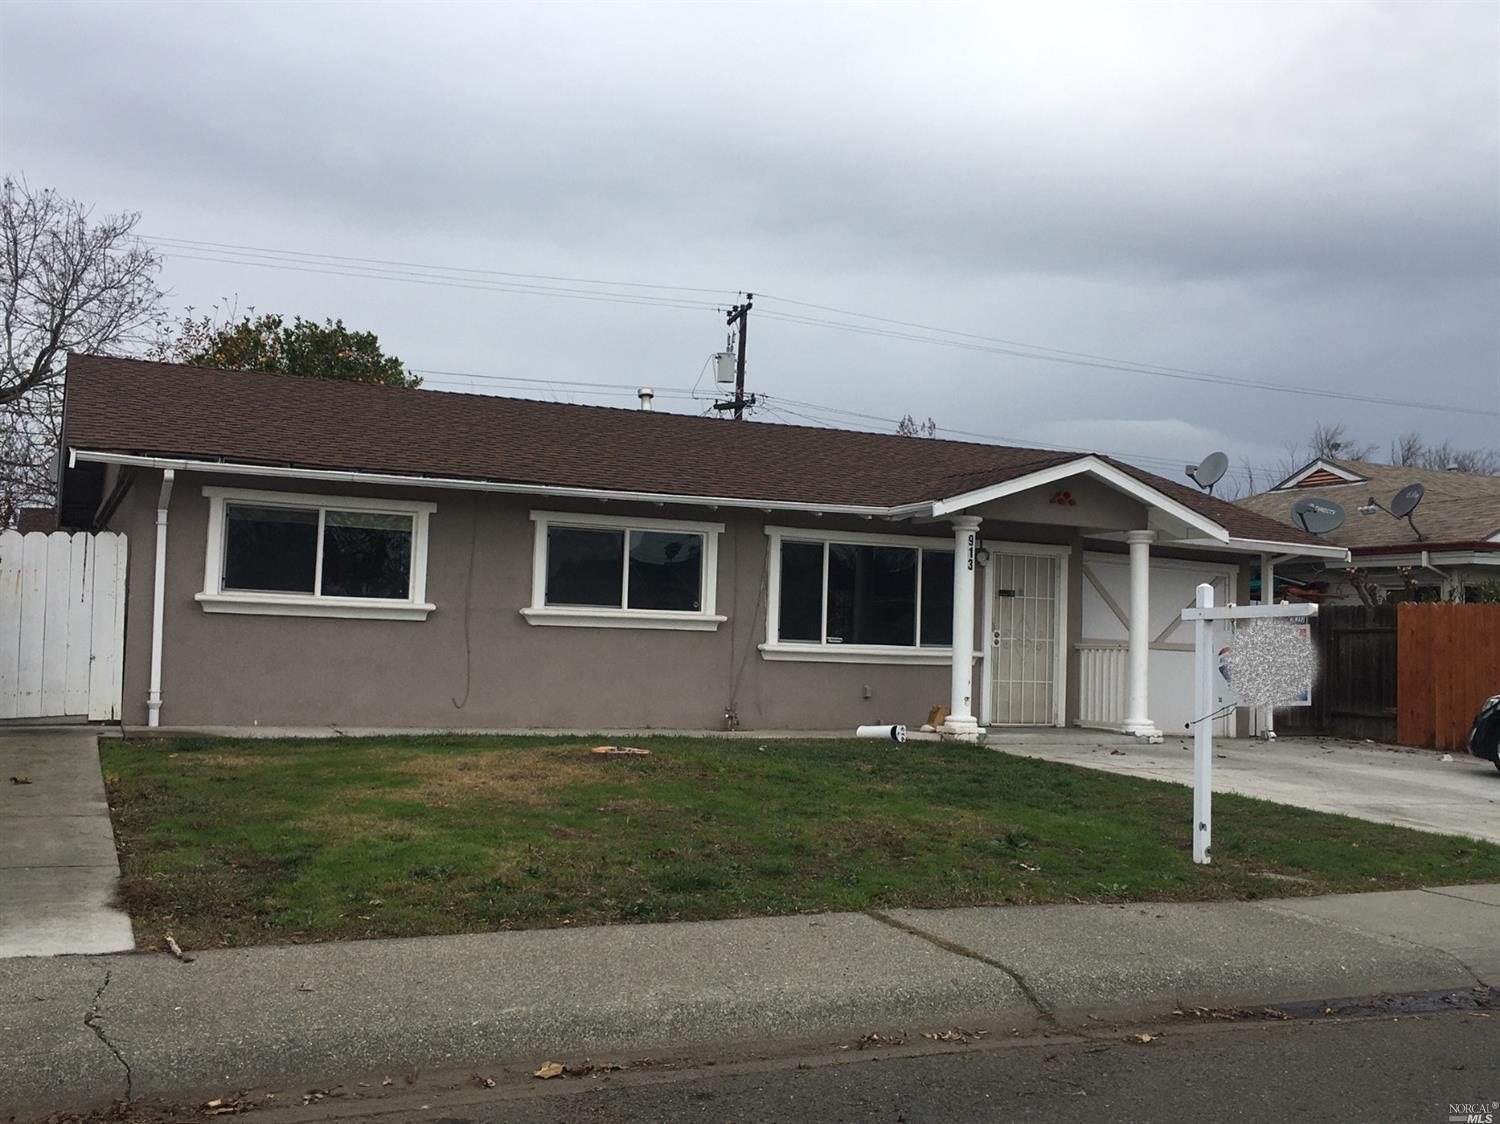 Move in ready single story! Fresh interior paint, updated bathroom. Large back yard with covered patio. Large shed too. Laminate flooring thru out. Close to schools, shopping and freeway.